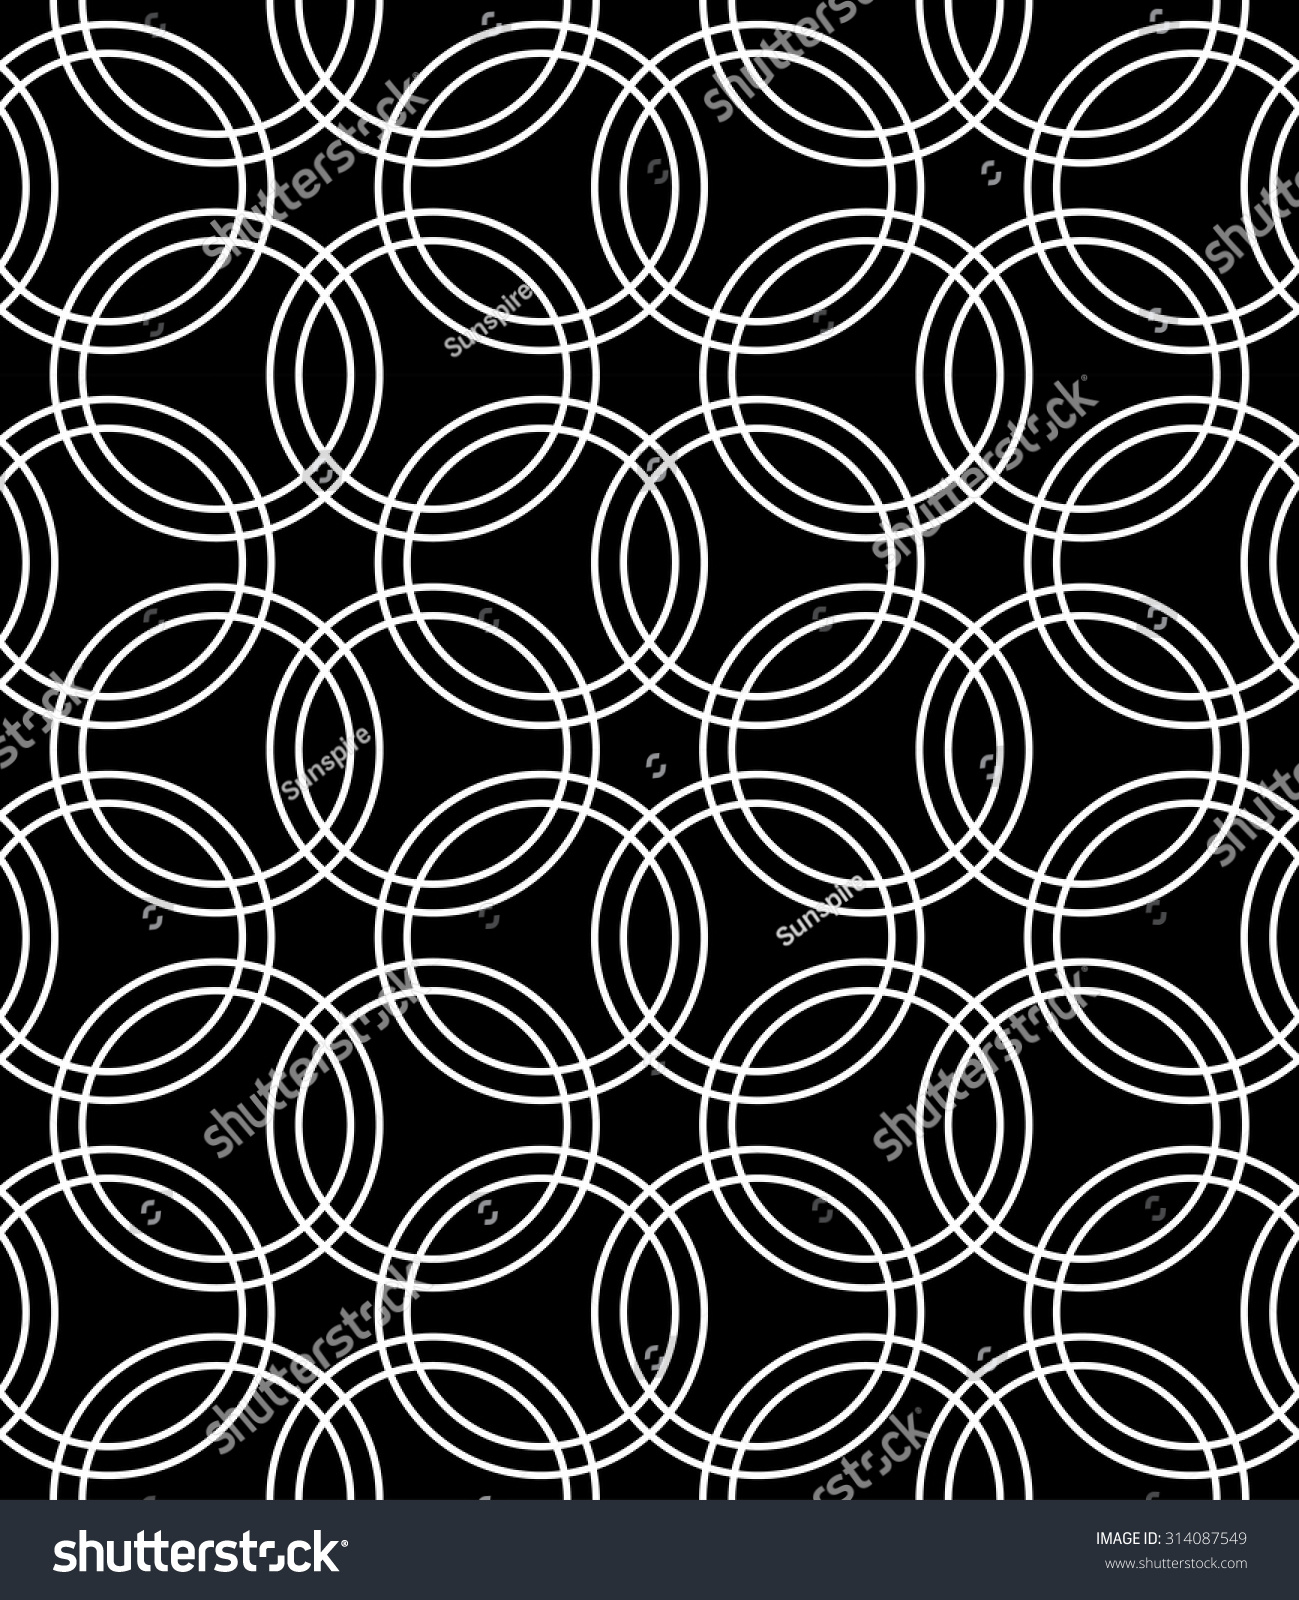 Black and white bed sheets texture - Vector Modern Seamless Pattern Flowers Black And White Textile Print Stylish Background Abstract